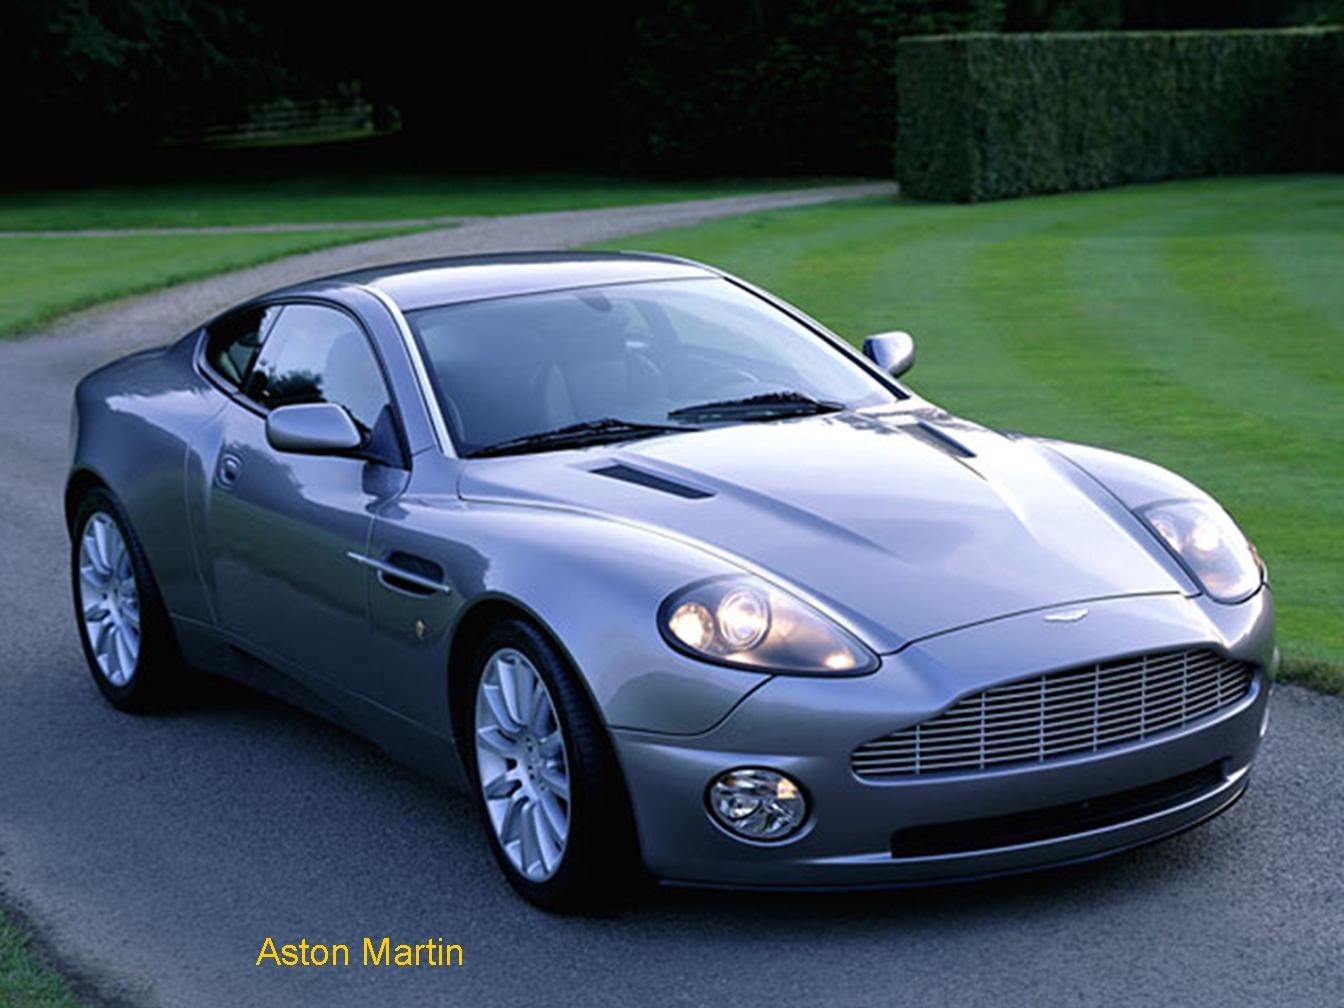 http://www.freewebs.com/powertrain/Aston-Martin_01.jpg